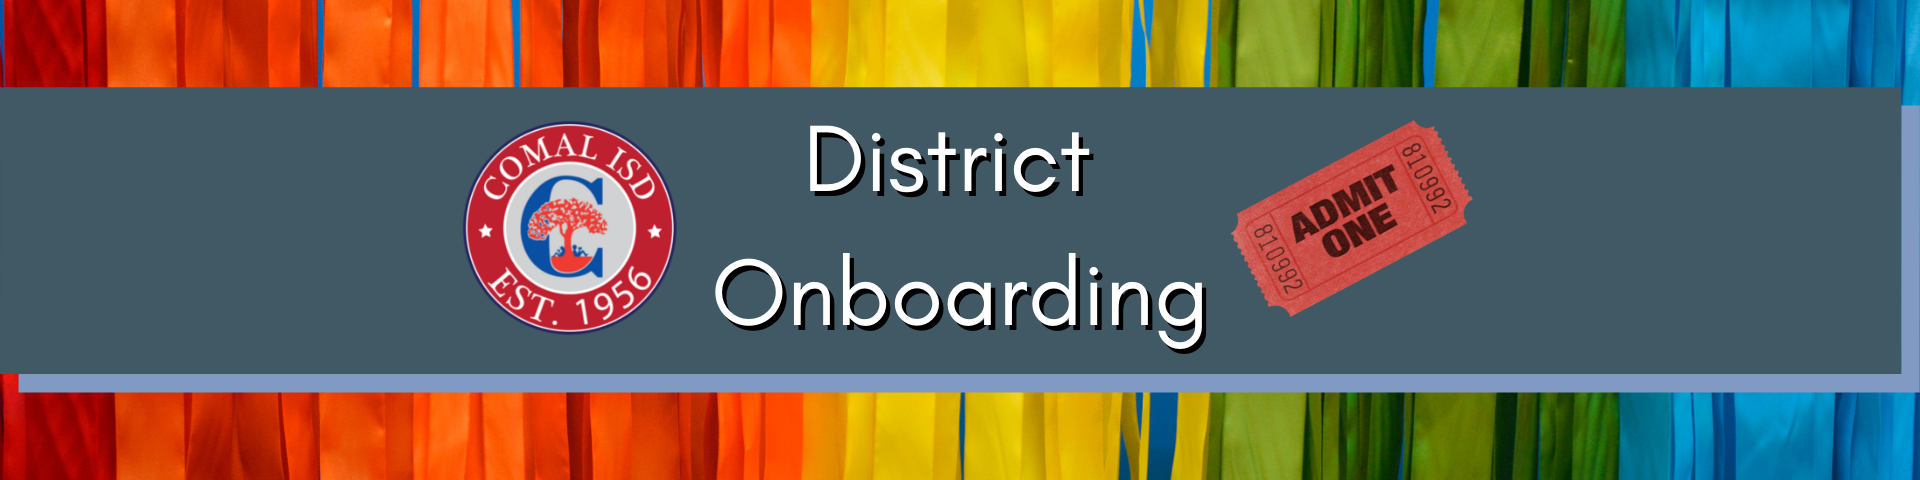 District Onboarding